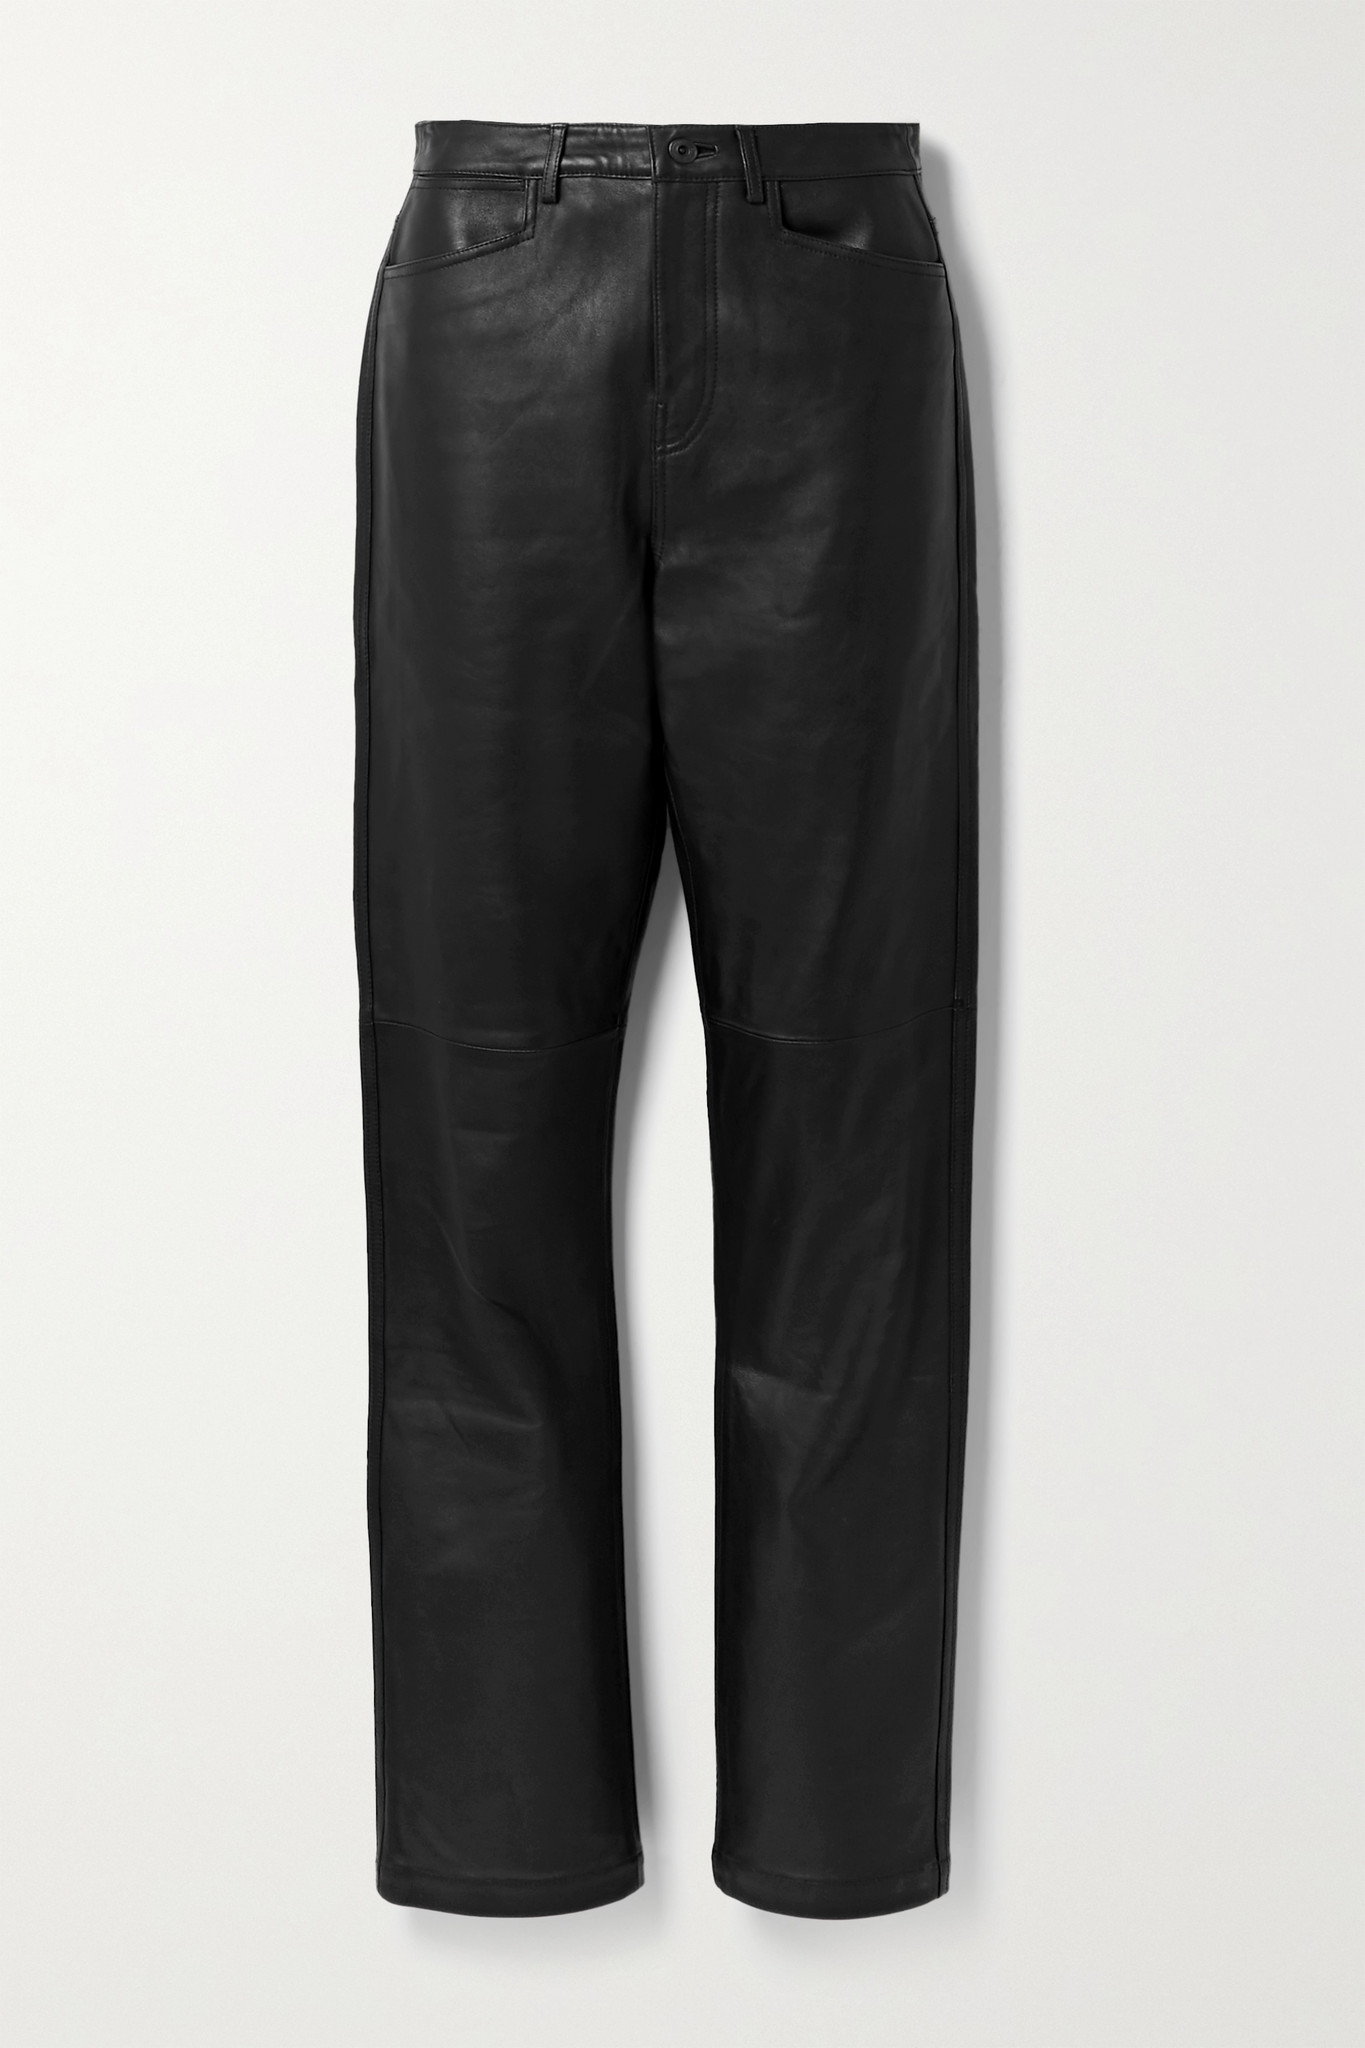 PROENZA SCHOULER WHITE LABEL - Leather Straight-leg Pants - Black - US0